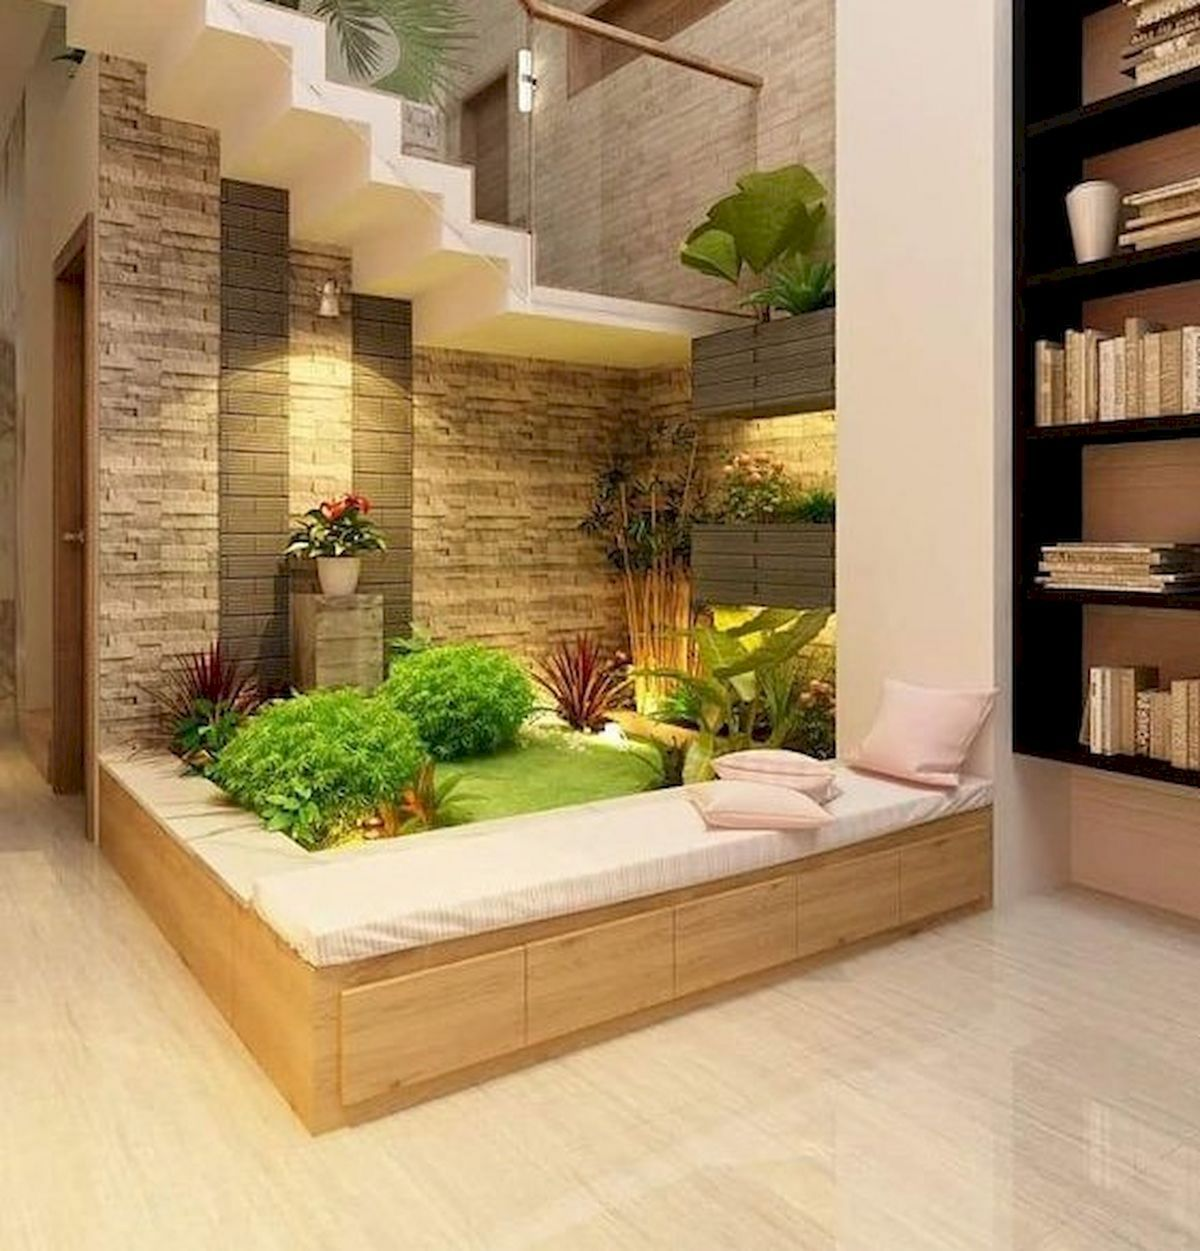 15 Perfect Indoor Garden Design Ideas For Fresh Houses Home Garden Design Interior Garden Fresh House